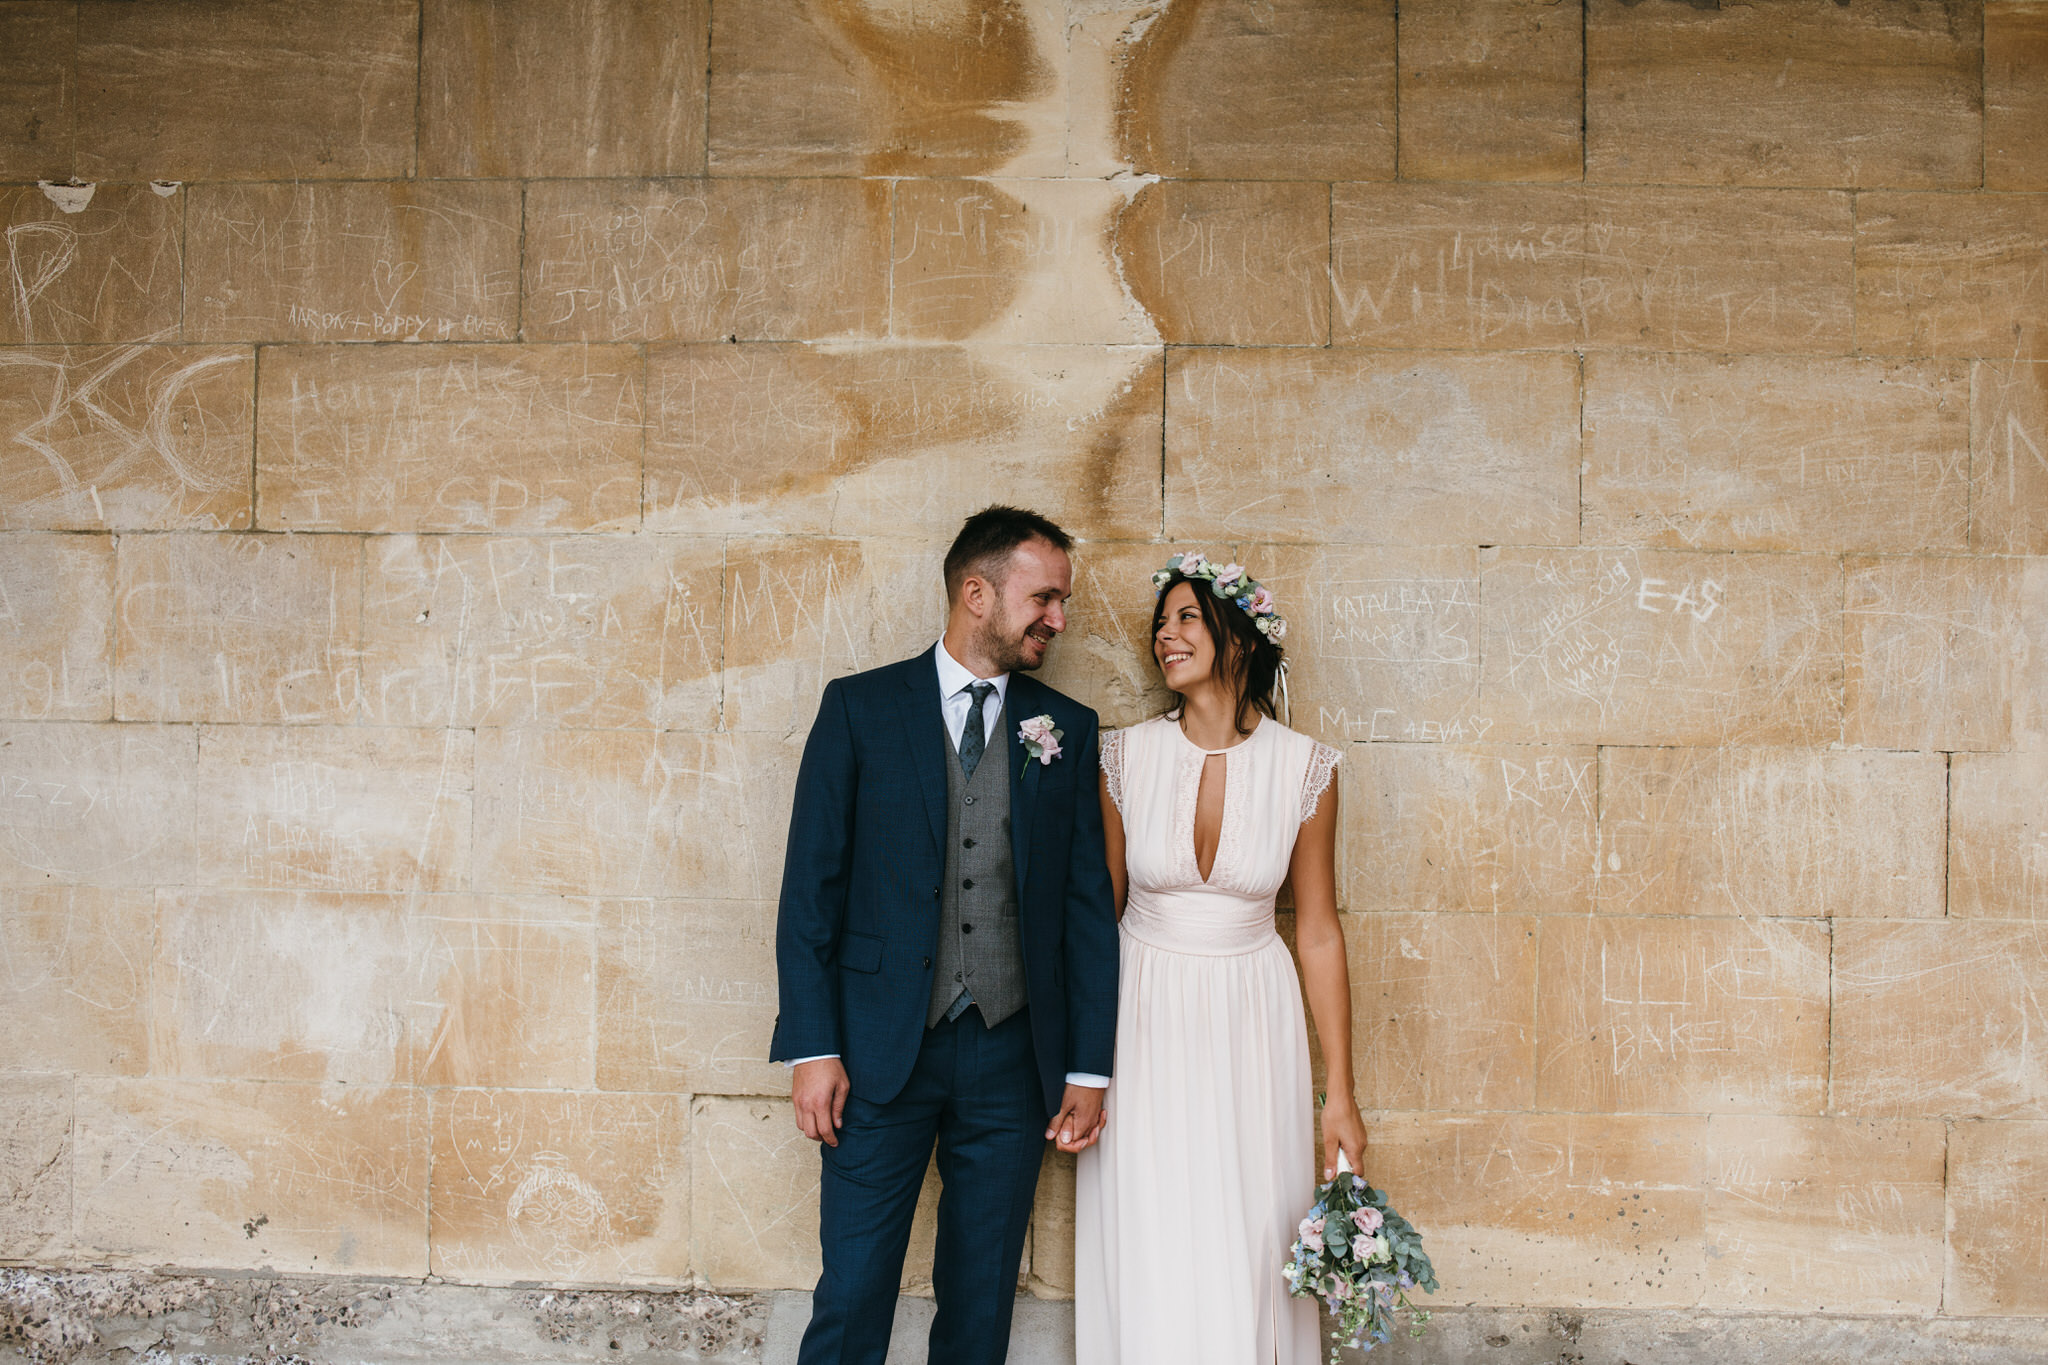 Bath guildhall intimate wedding photography 4